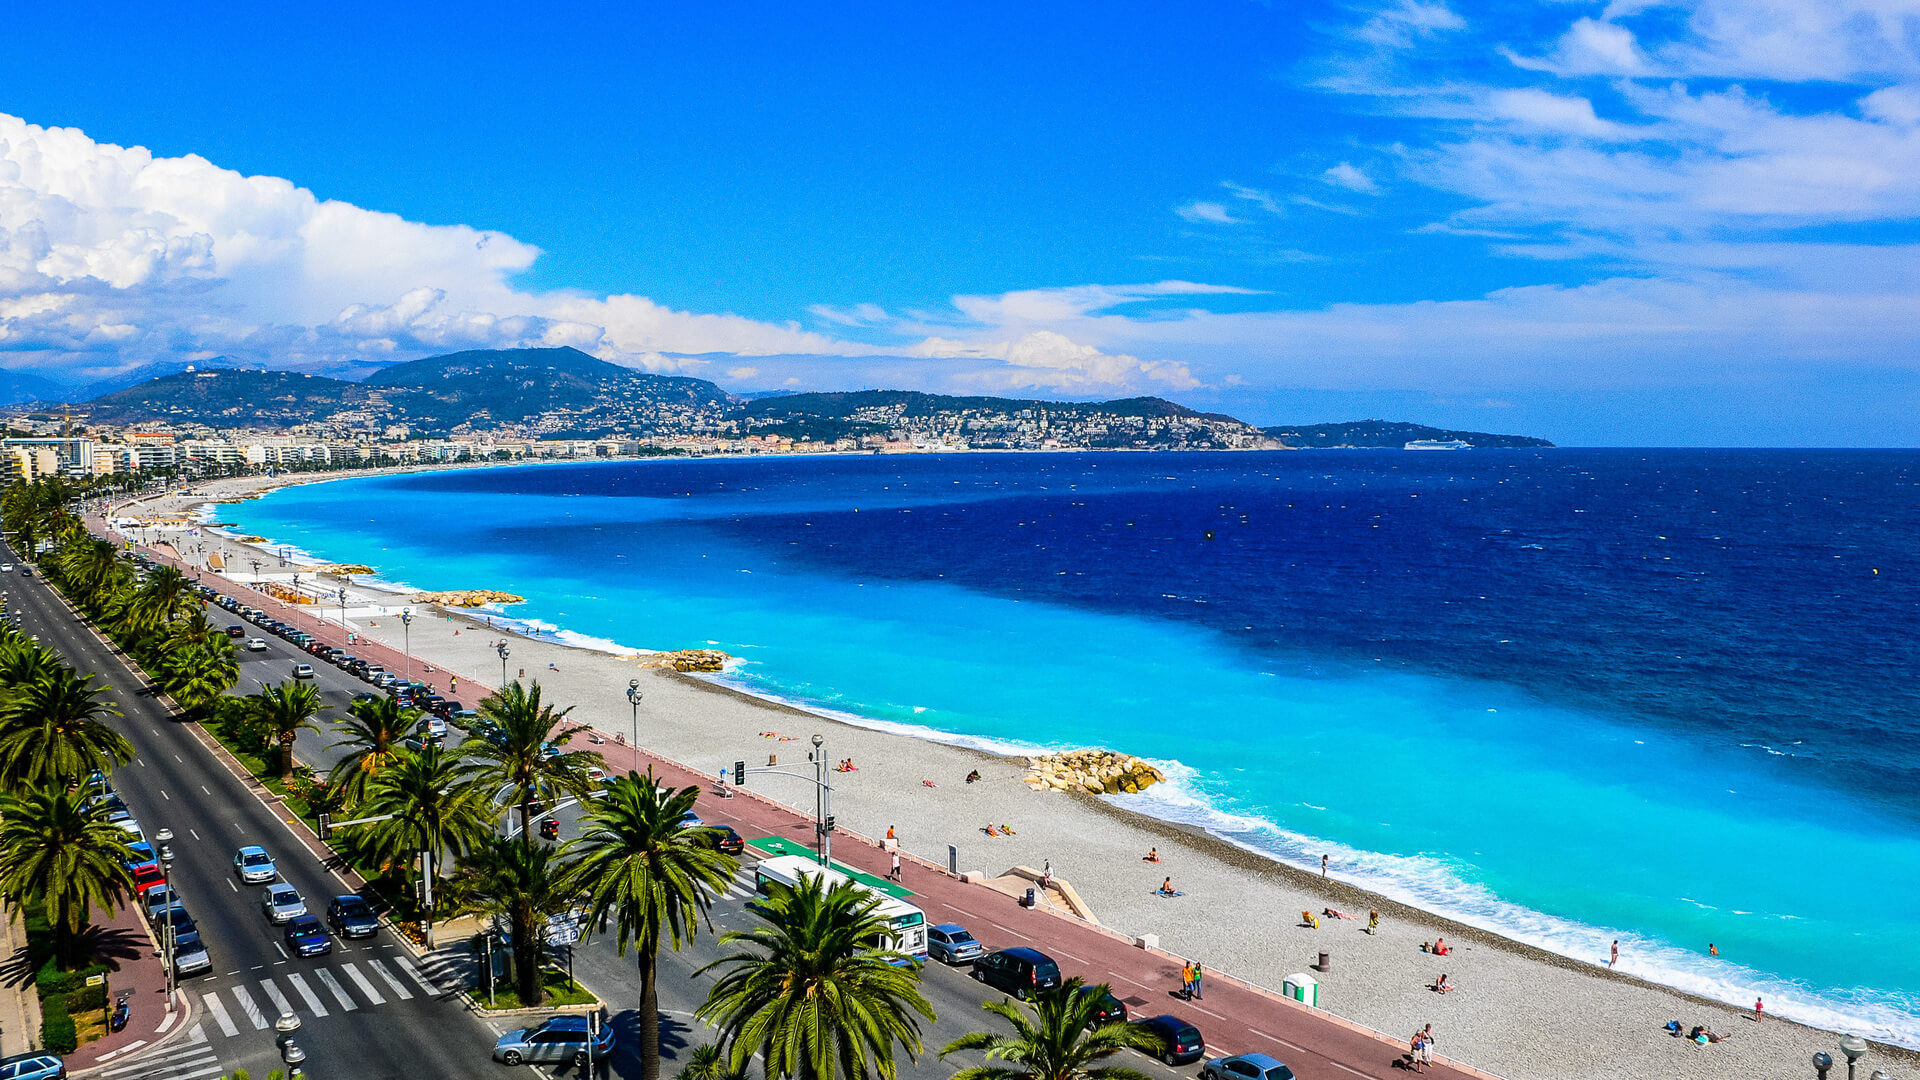 View from the beach in the city of Nice France